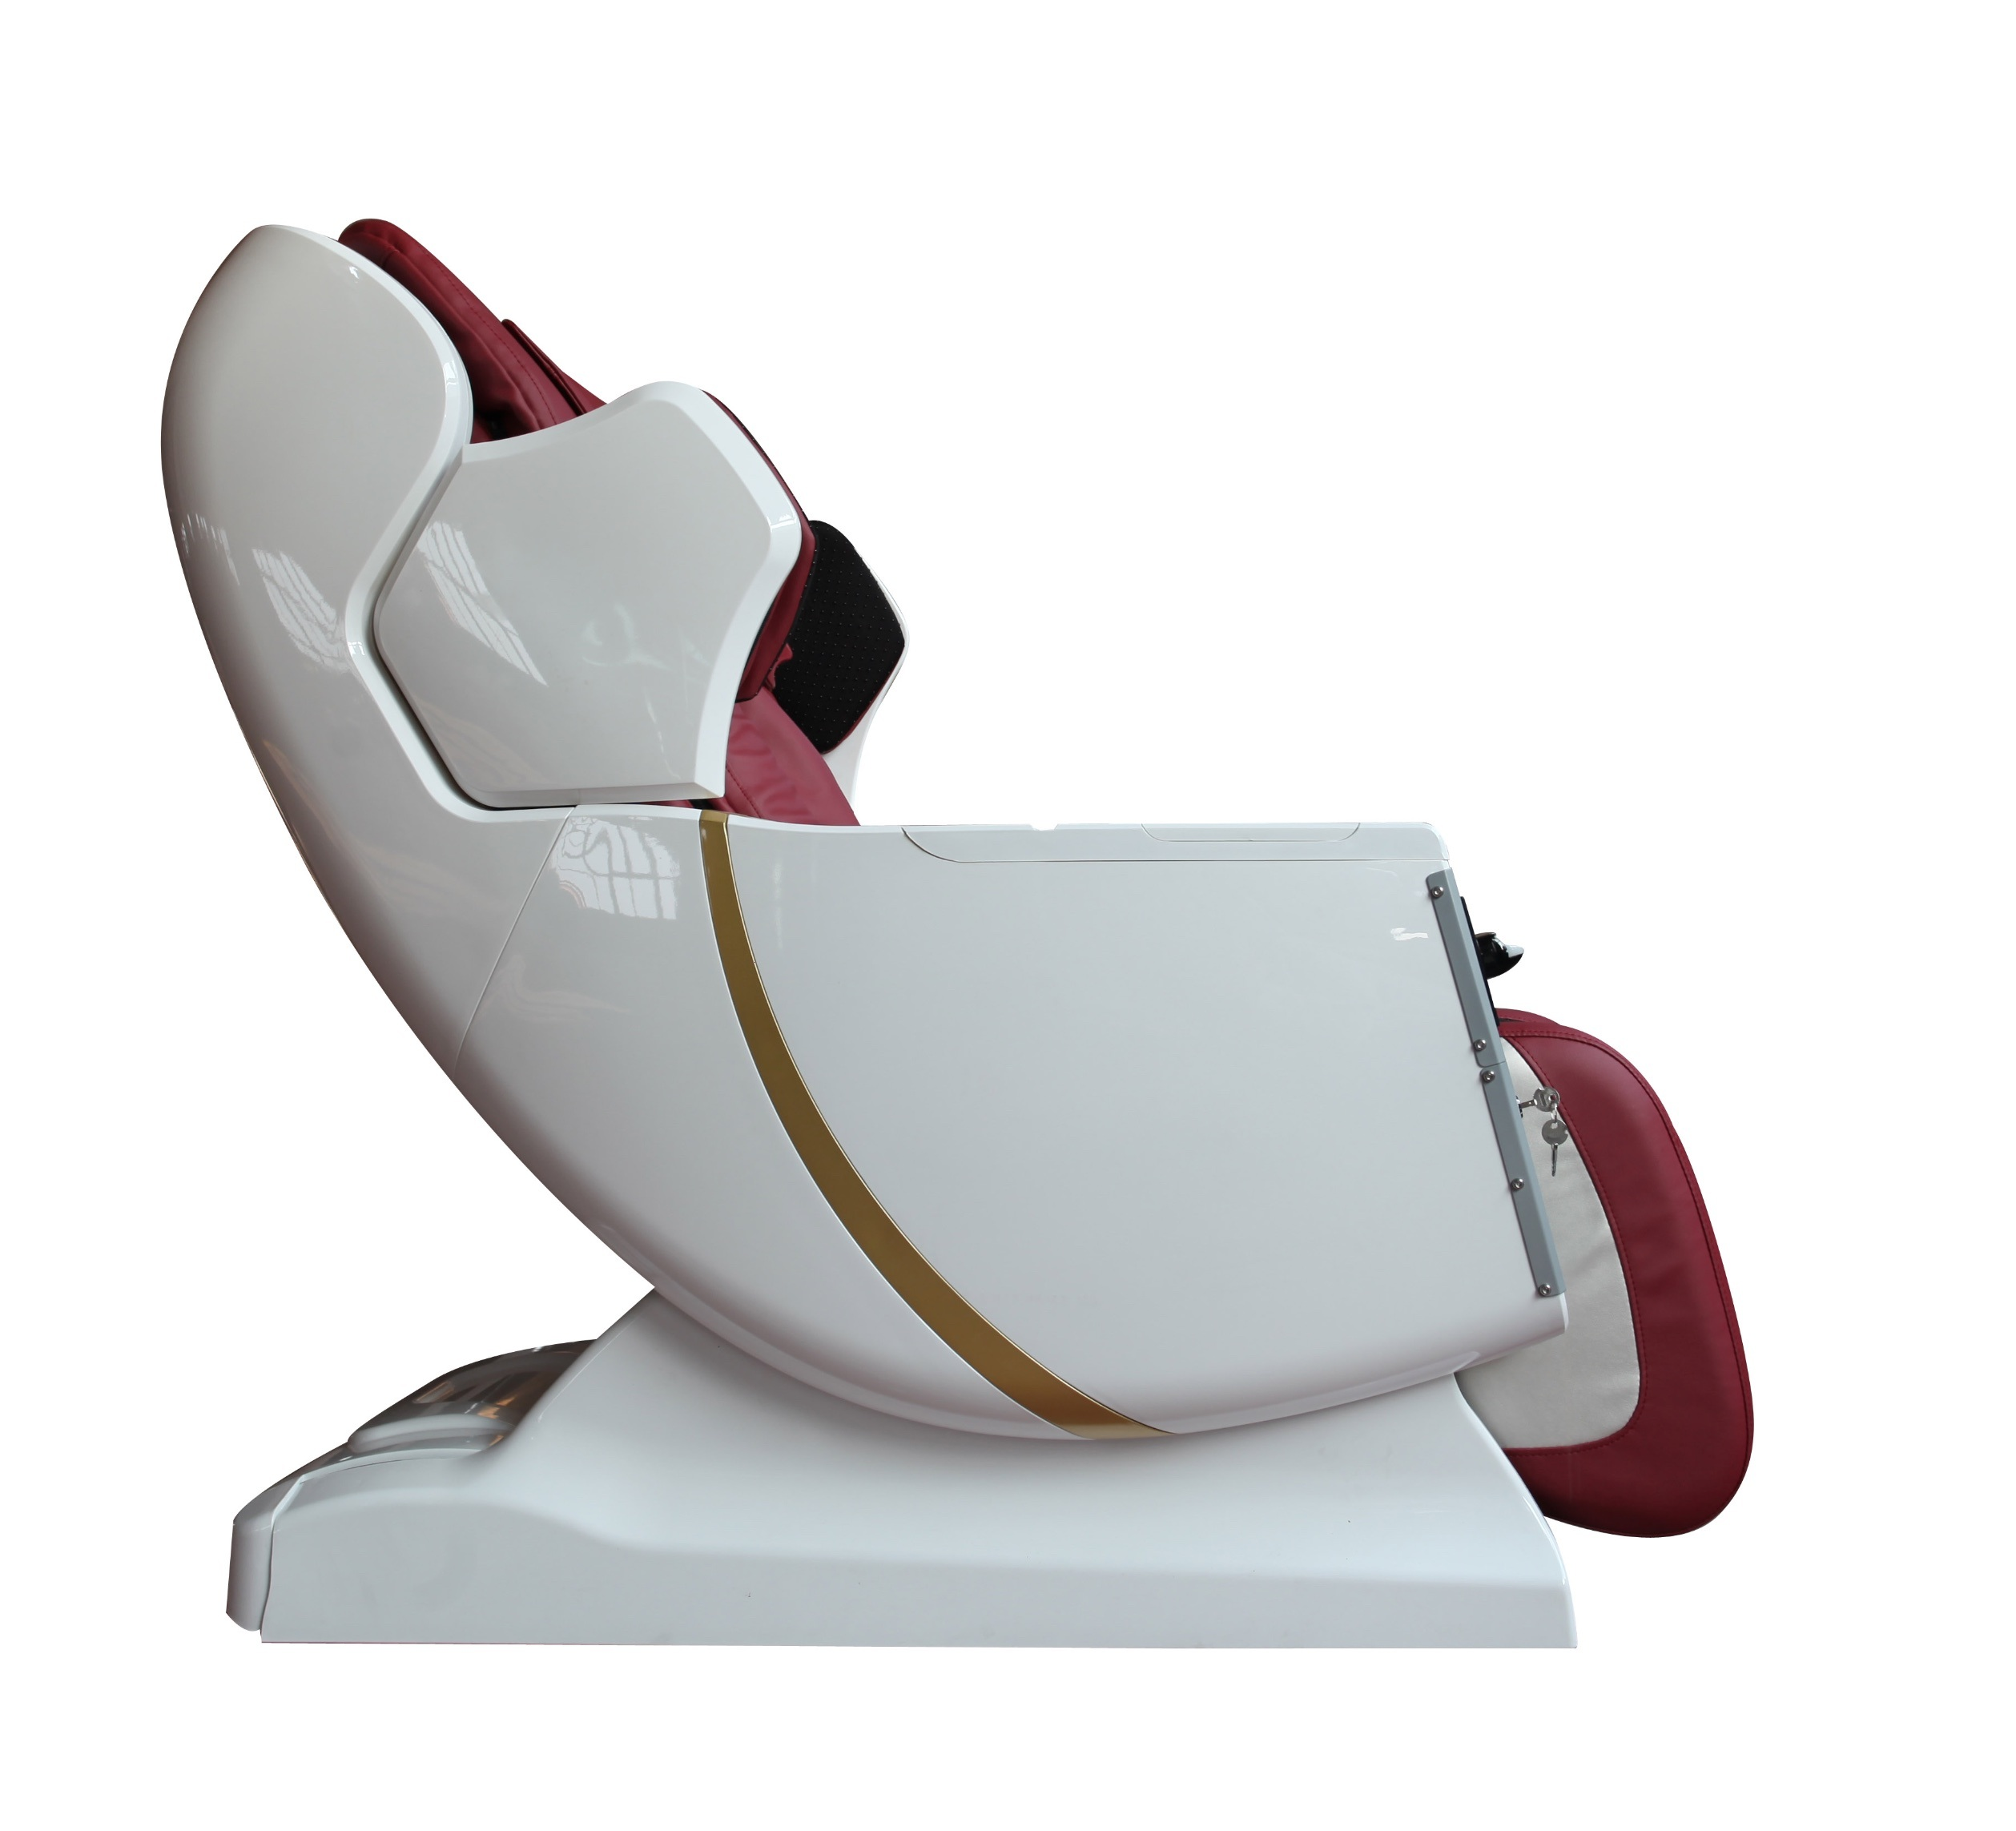 Paypal Credit Card Coin Bill Vending Massage Chair for Airport and Shopping Malls